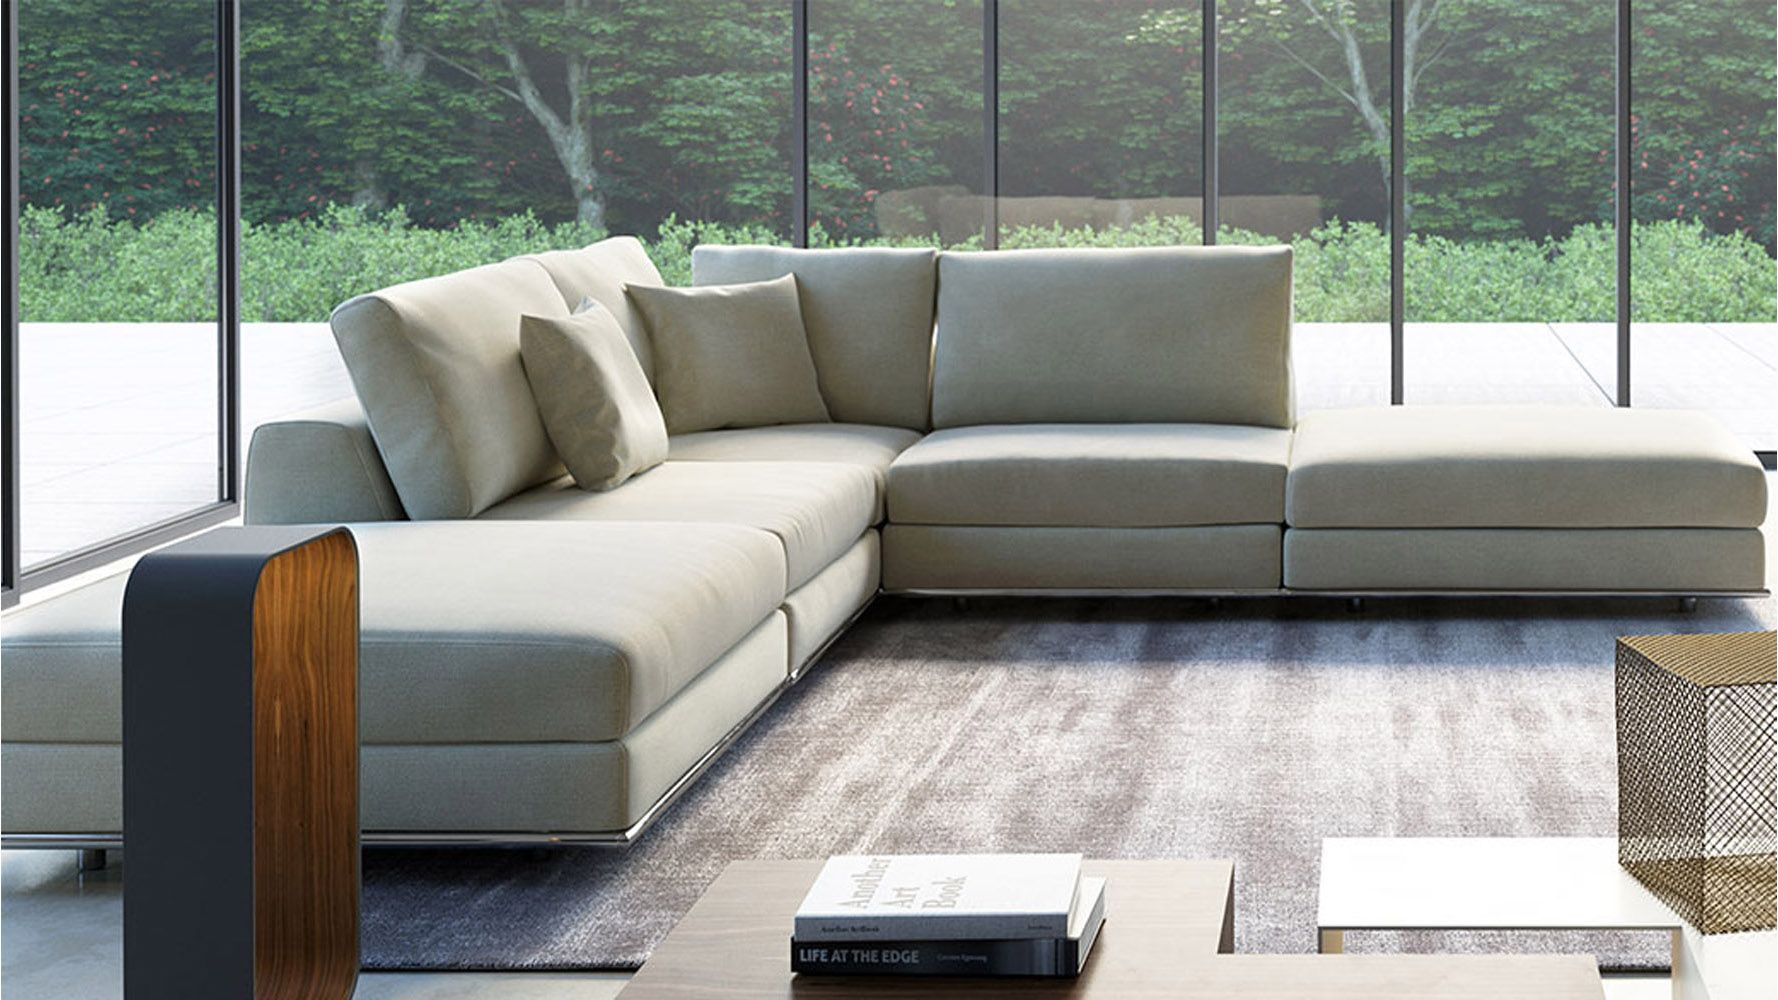 Cool Armless Sectional Sofa Unique 22 On Contemporary Inspiration With. Neoteric  Oversized ...